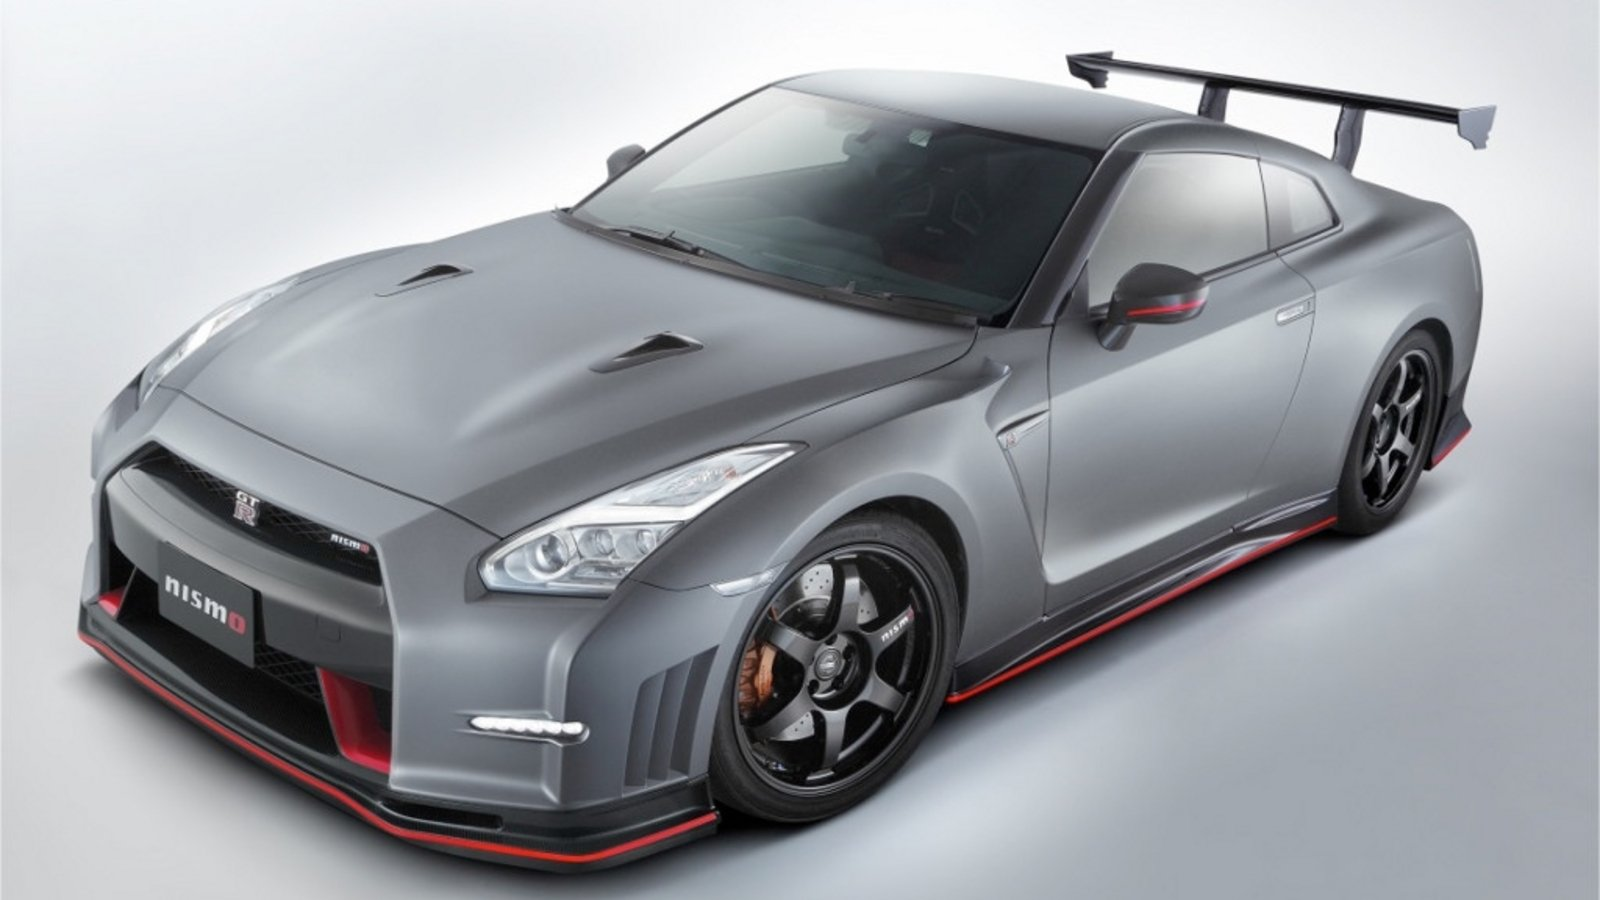 2015 nissan gt r nismo n attack package review top speed. Black Bedroom Furniture Sets. Home Design Ideas